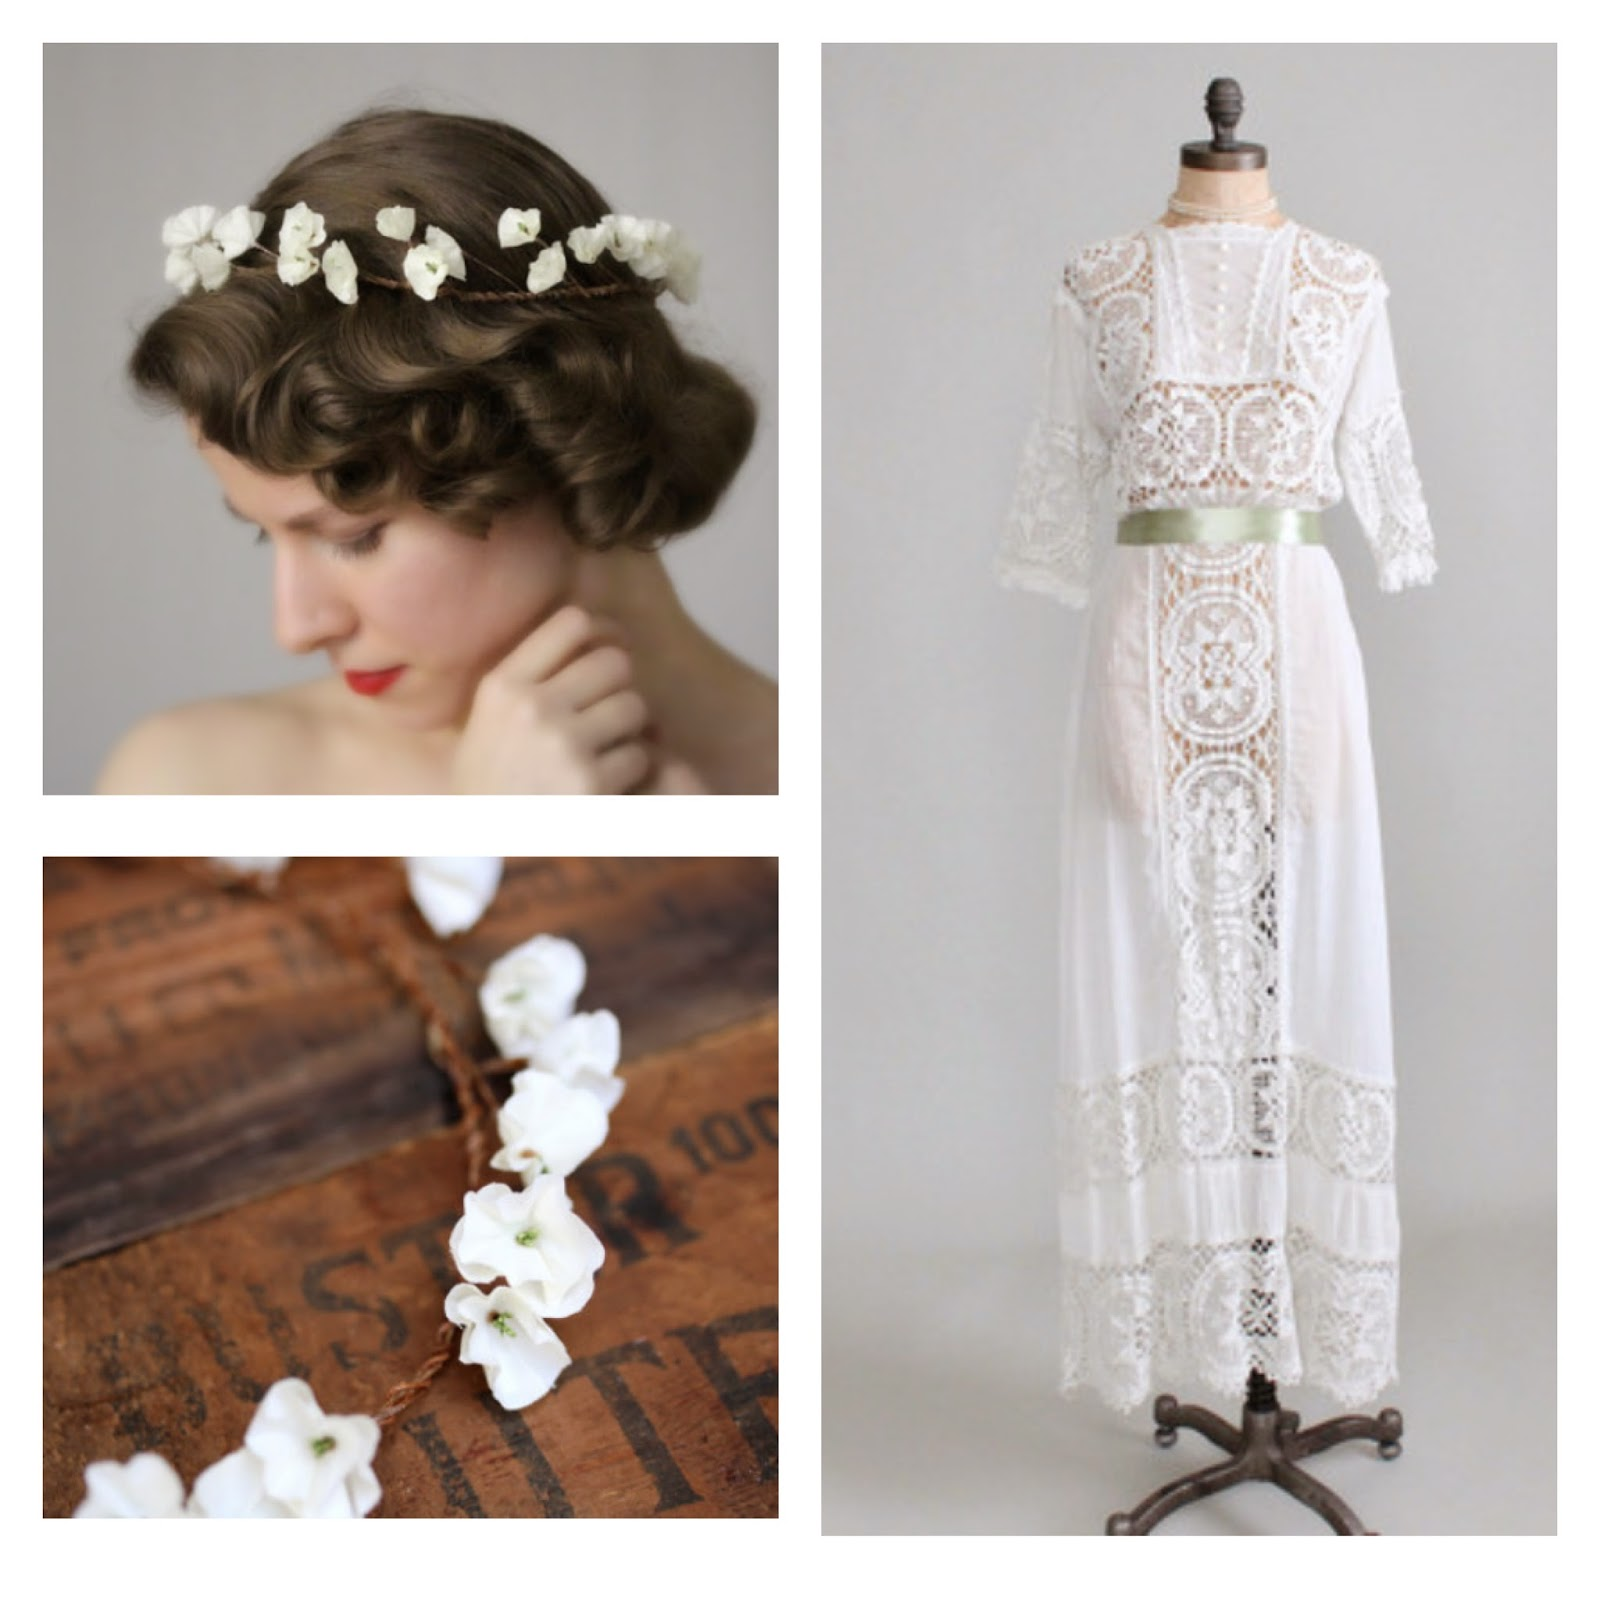 Vintage Wedding Dresses Raleigh Nc: ChatterBlossom: Outfit Pairings Too Good Not To Share